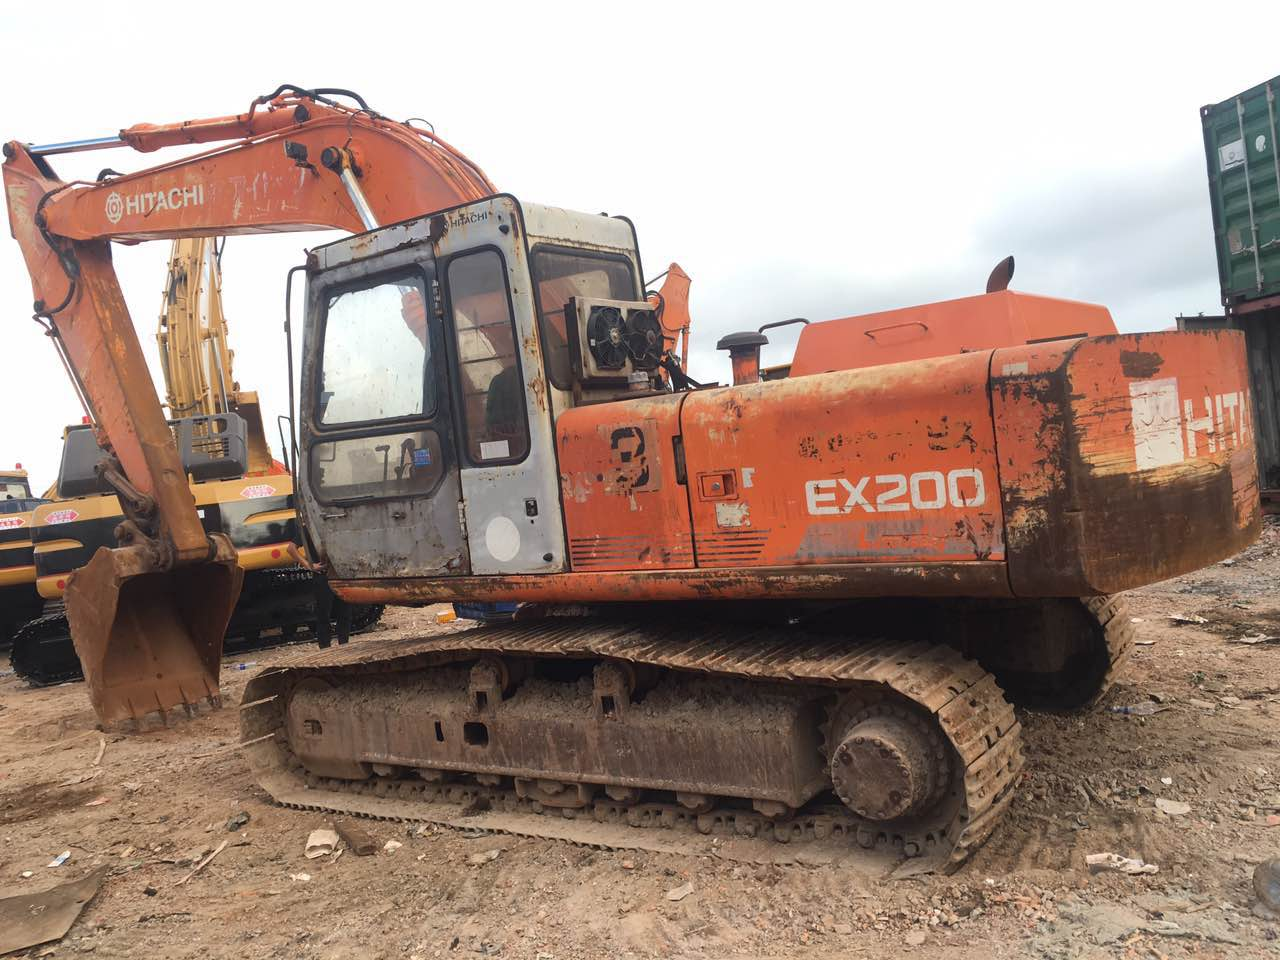 Original used Hitachi excavator used Hitachi excavator for sale